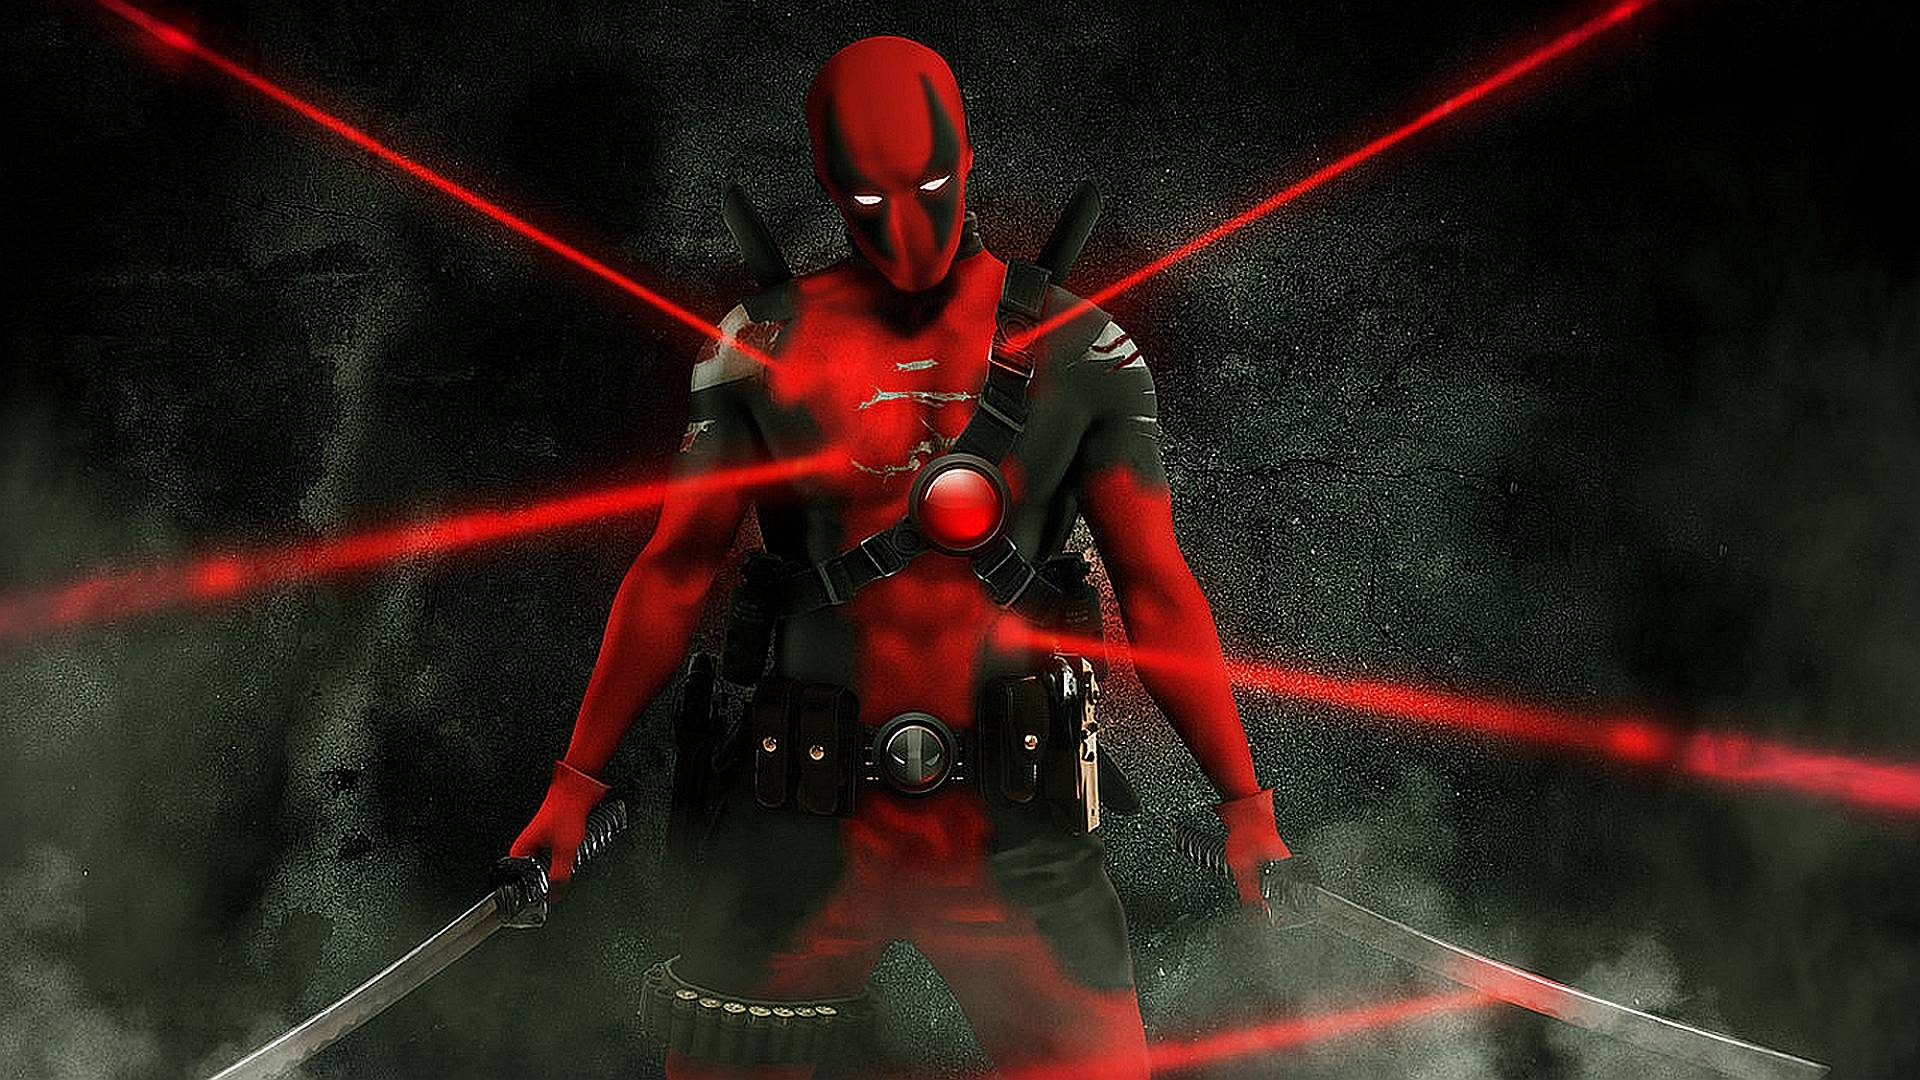 Deadpool-Movie-Widescreen-with-High-Definition-Resolution-1920x1080-px-K-wallpaper-wpc5803984